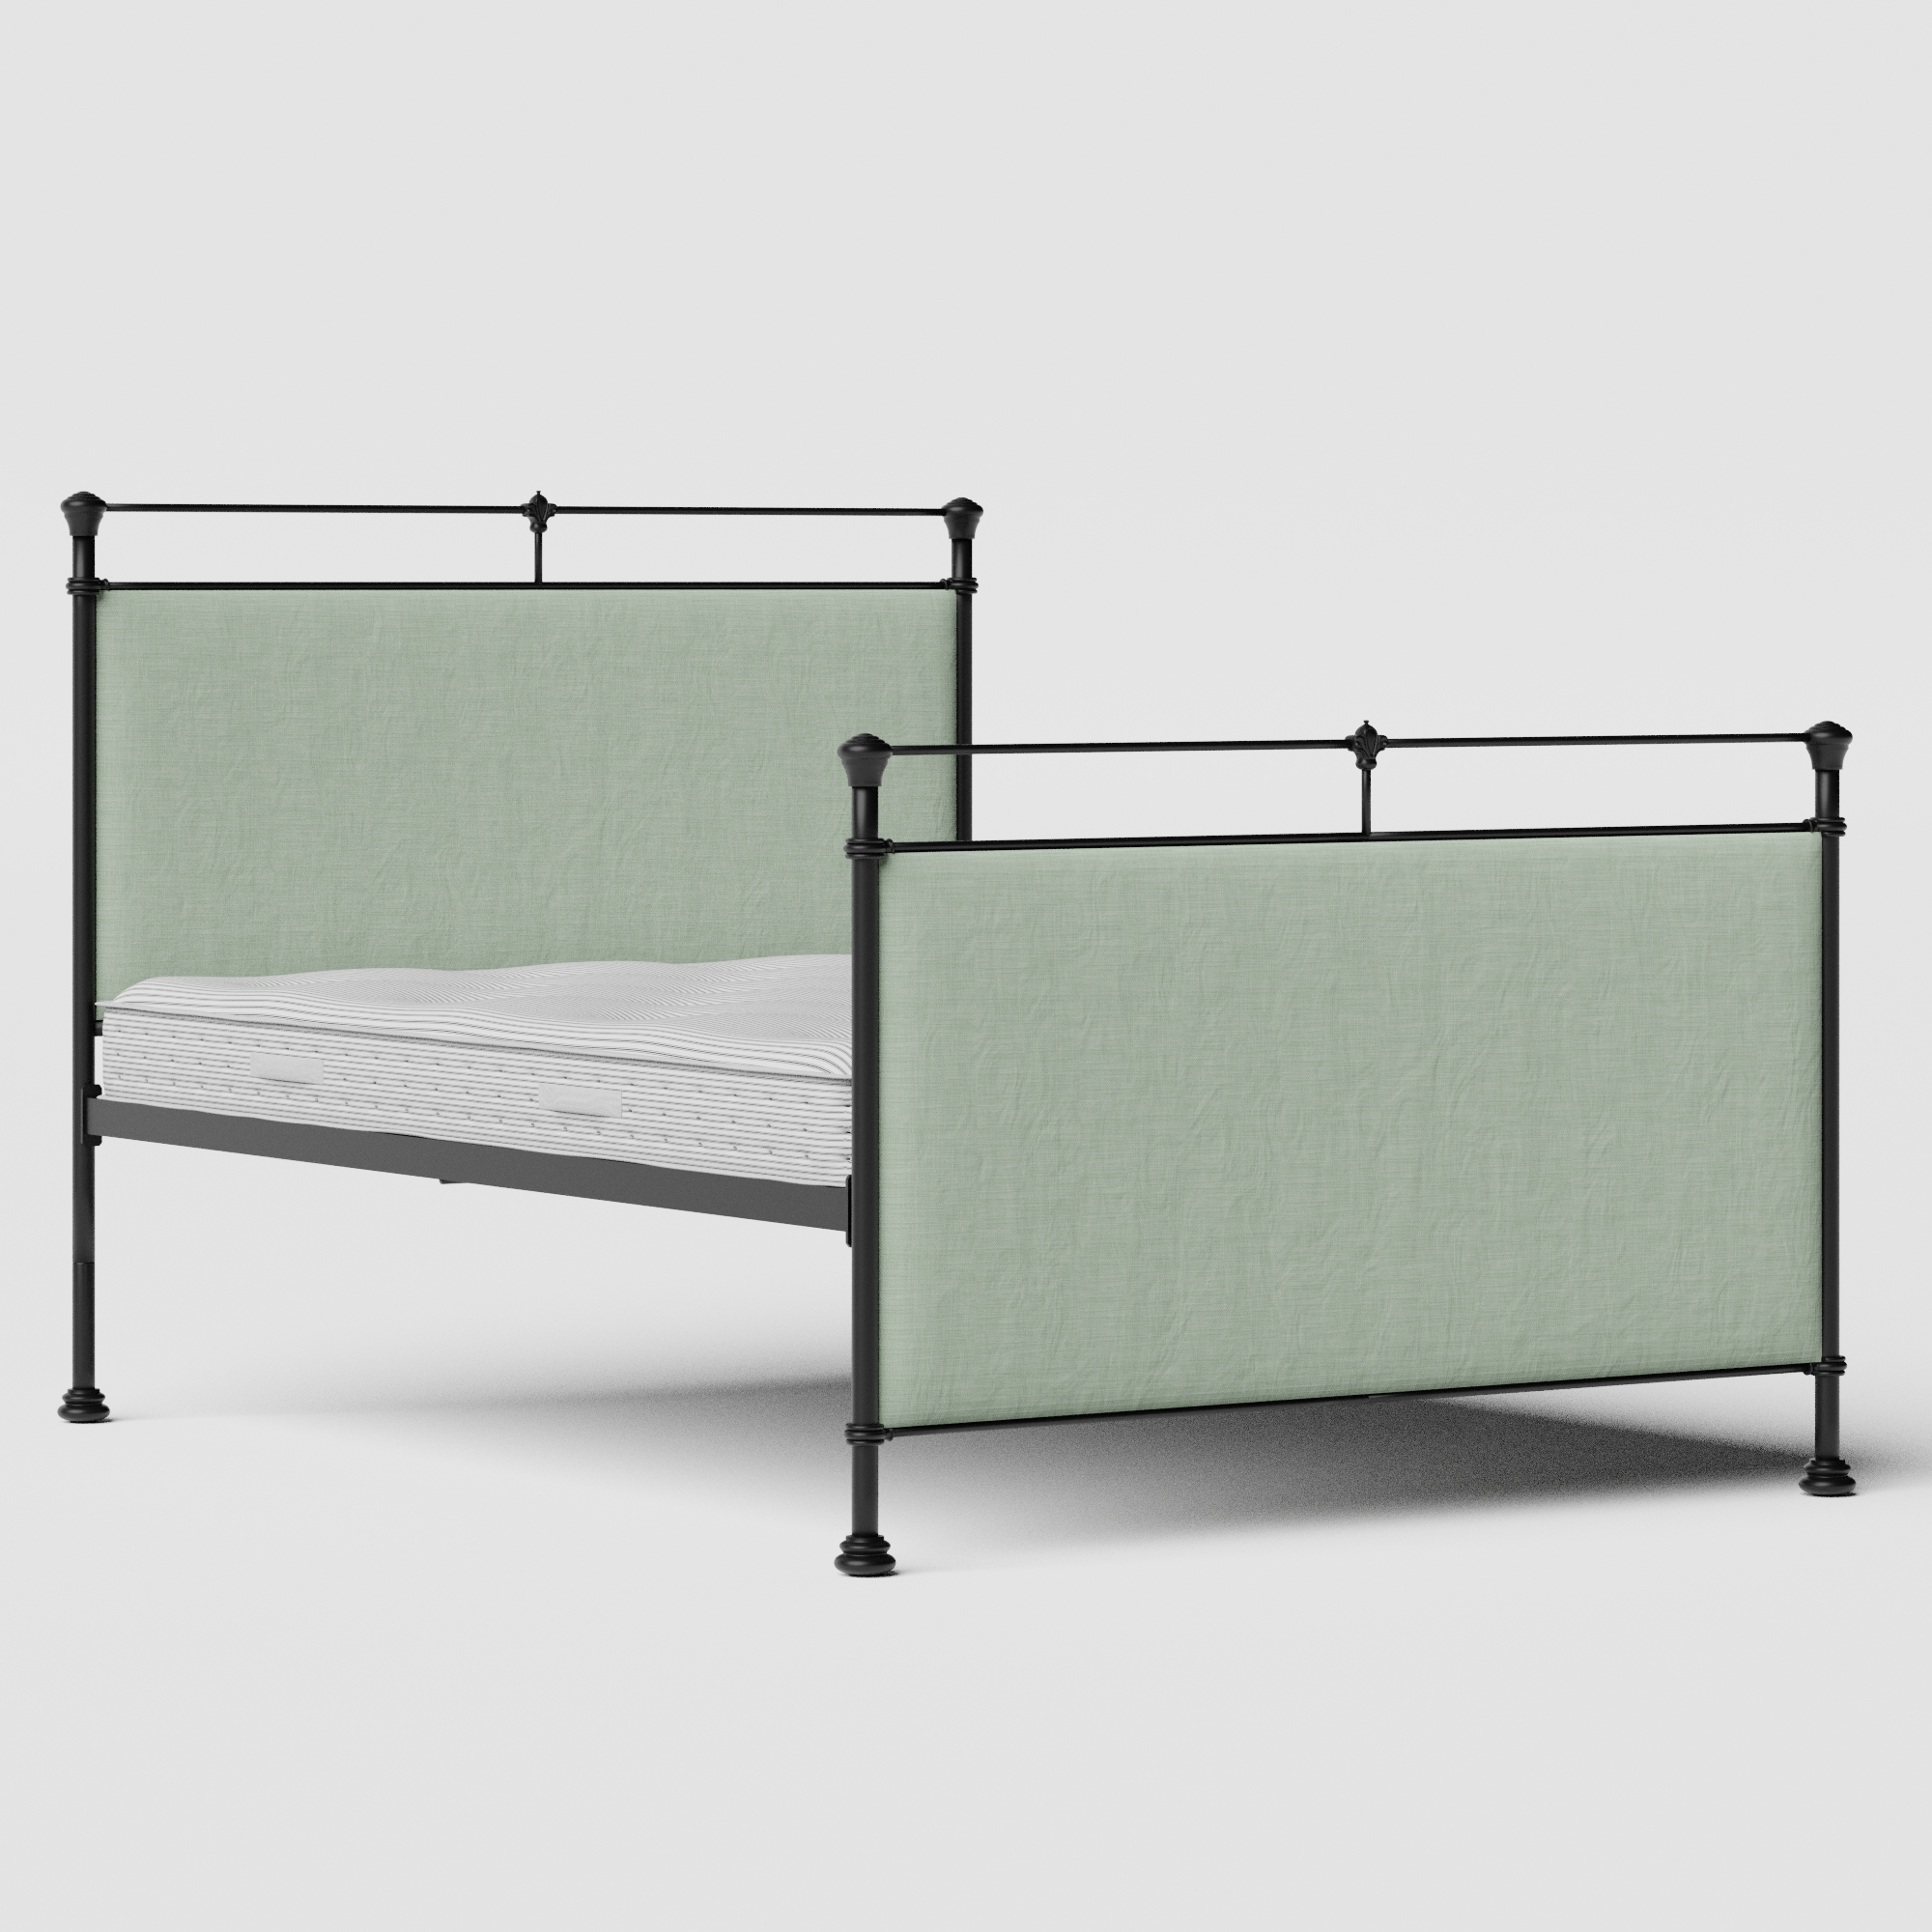 Lille iron/metal upholstered bed in black with duckegg fabric